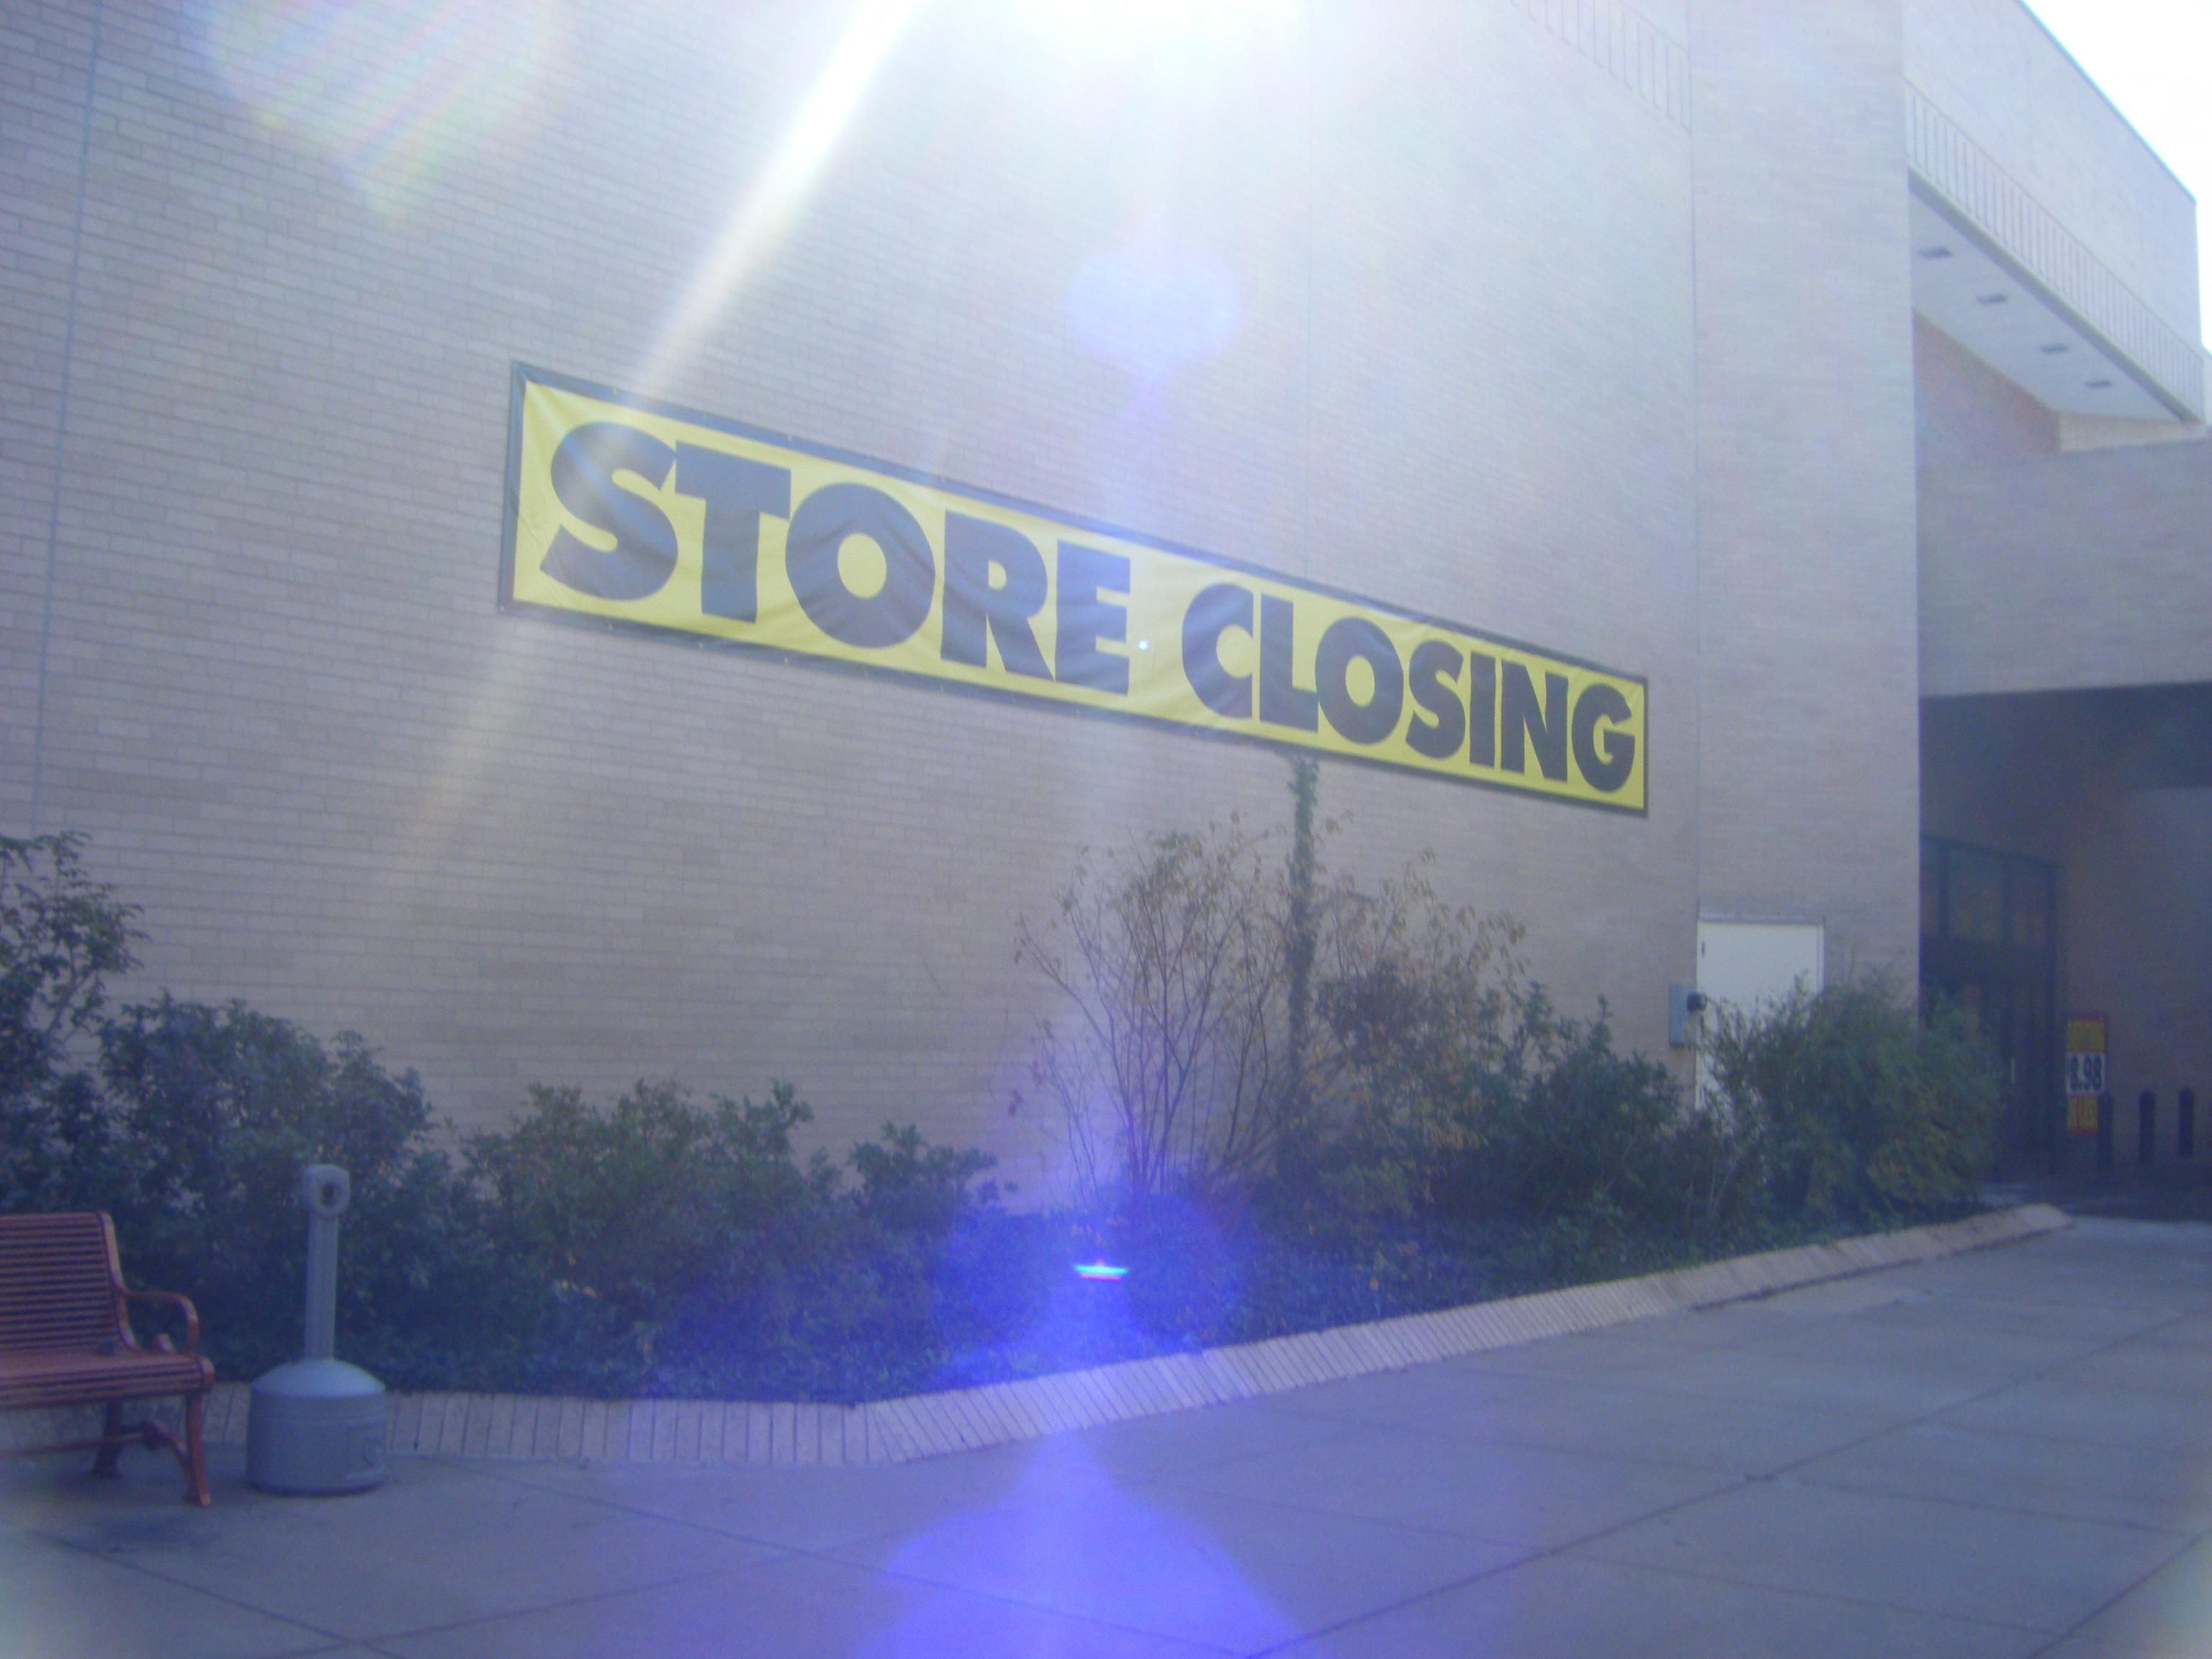 Store Banne Wiki File:store Closing Banner, S&b, Southwest Plaza.jpg